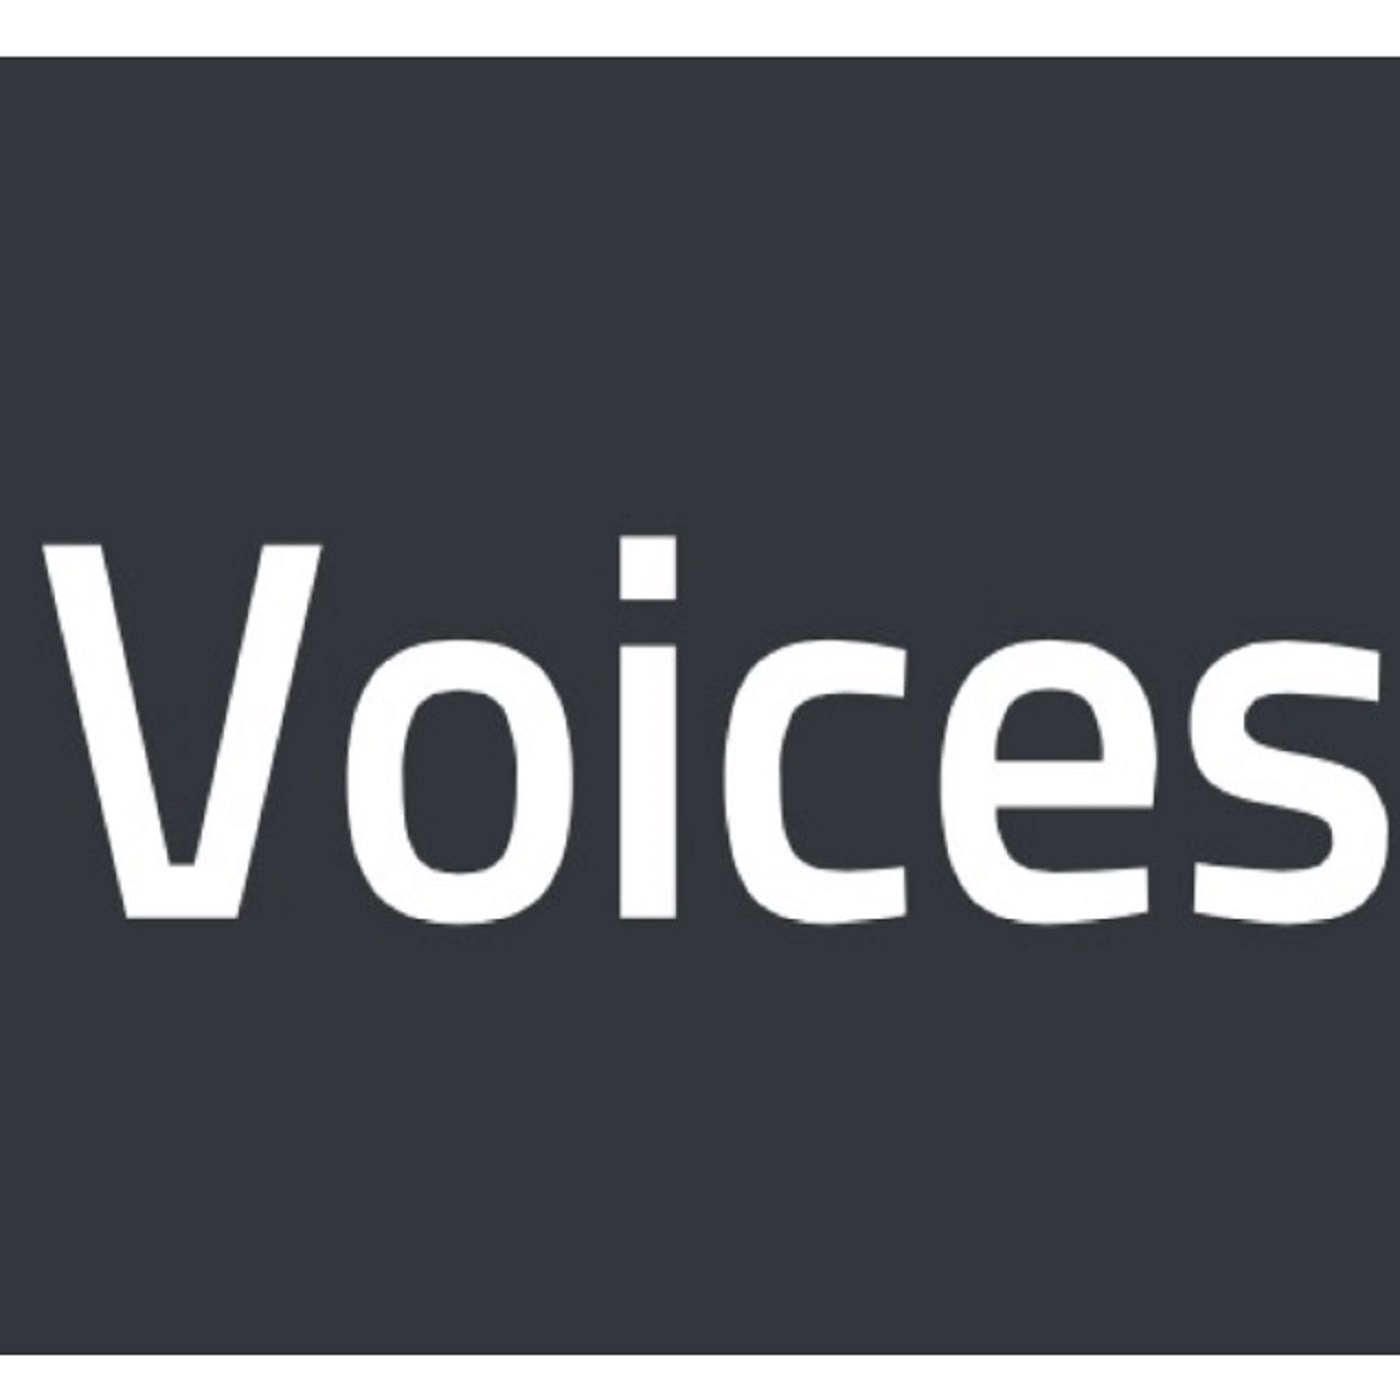 VoicesNetwork